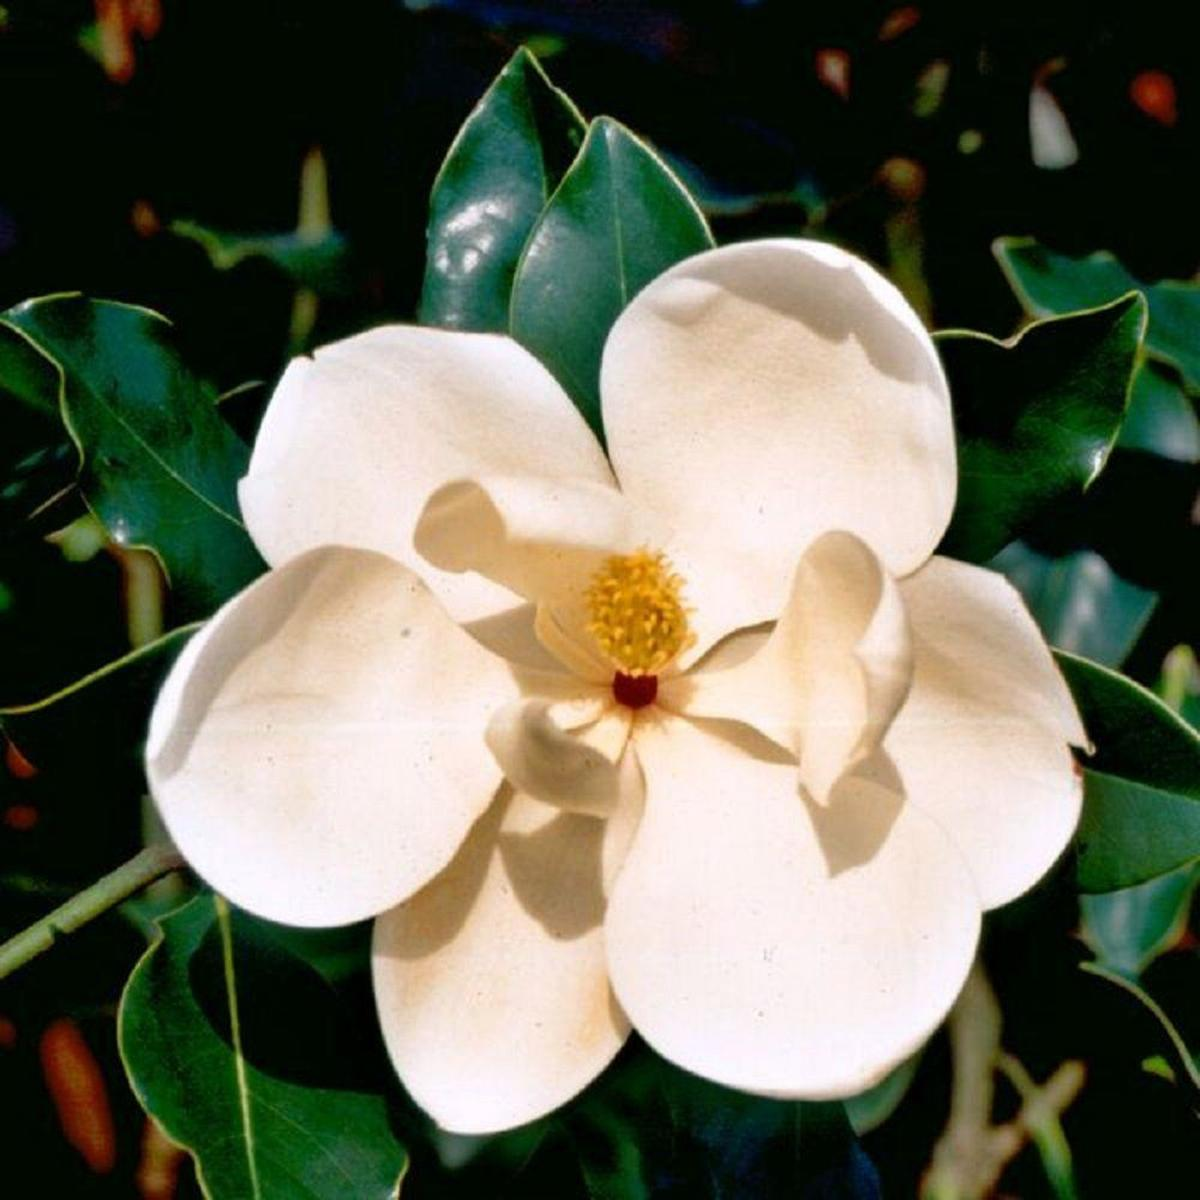 There are over 200 species of Magnolias.